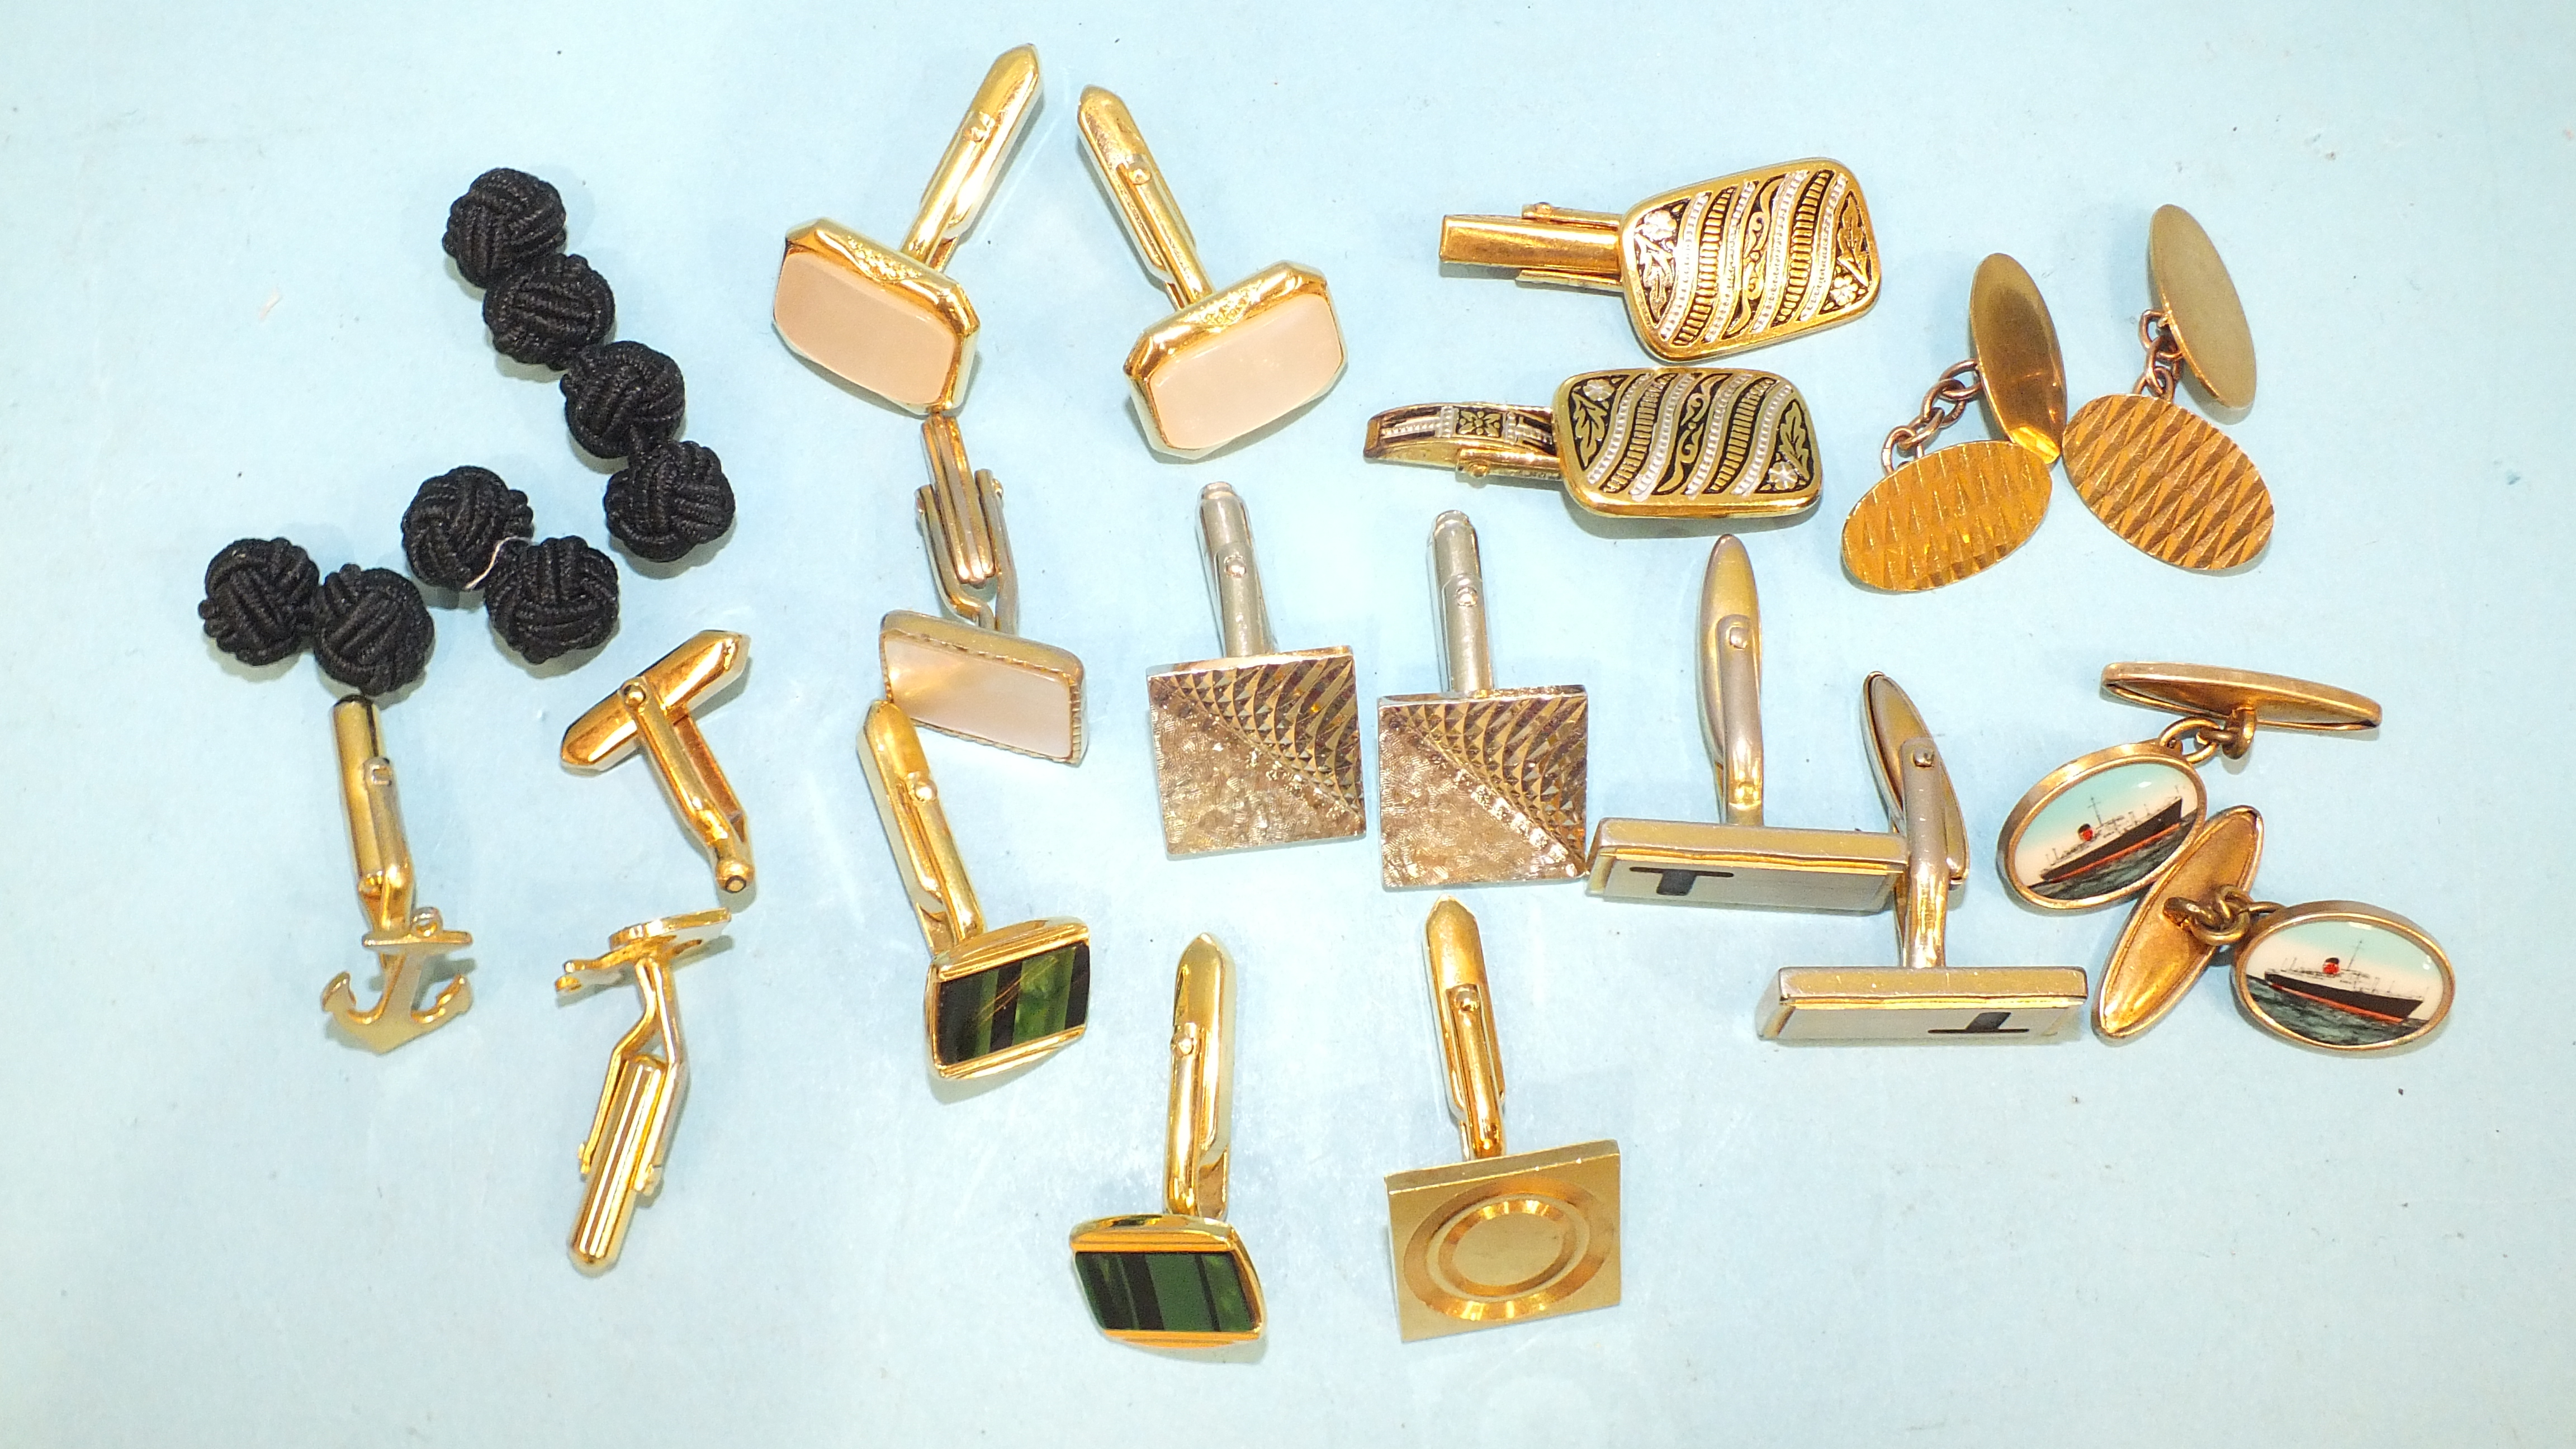 A pair of 9ct gold plain oval cufflinks, 5.3g and other metal cufflinks. - Image 2 of 2